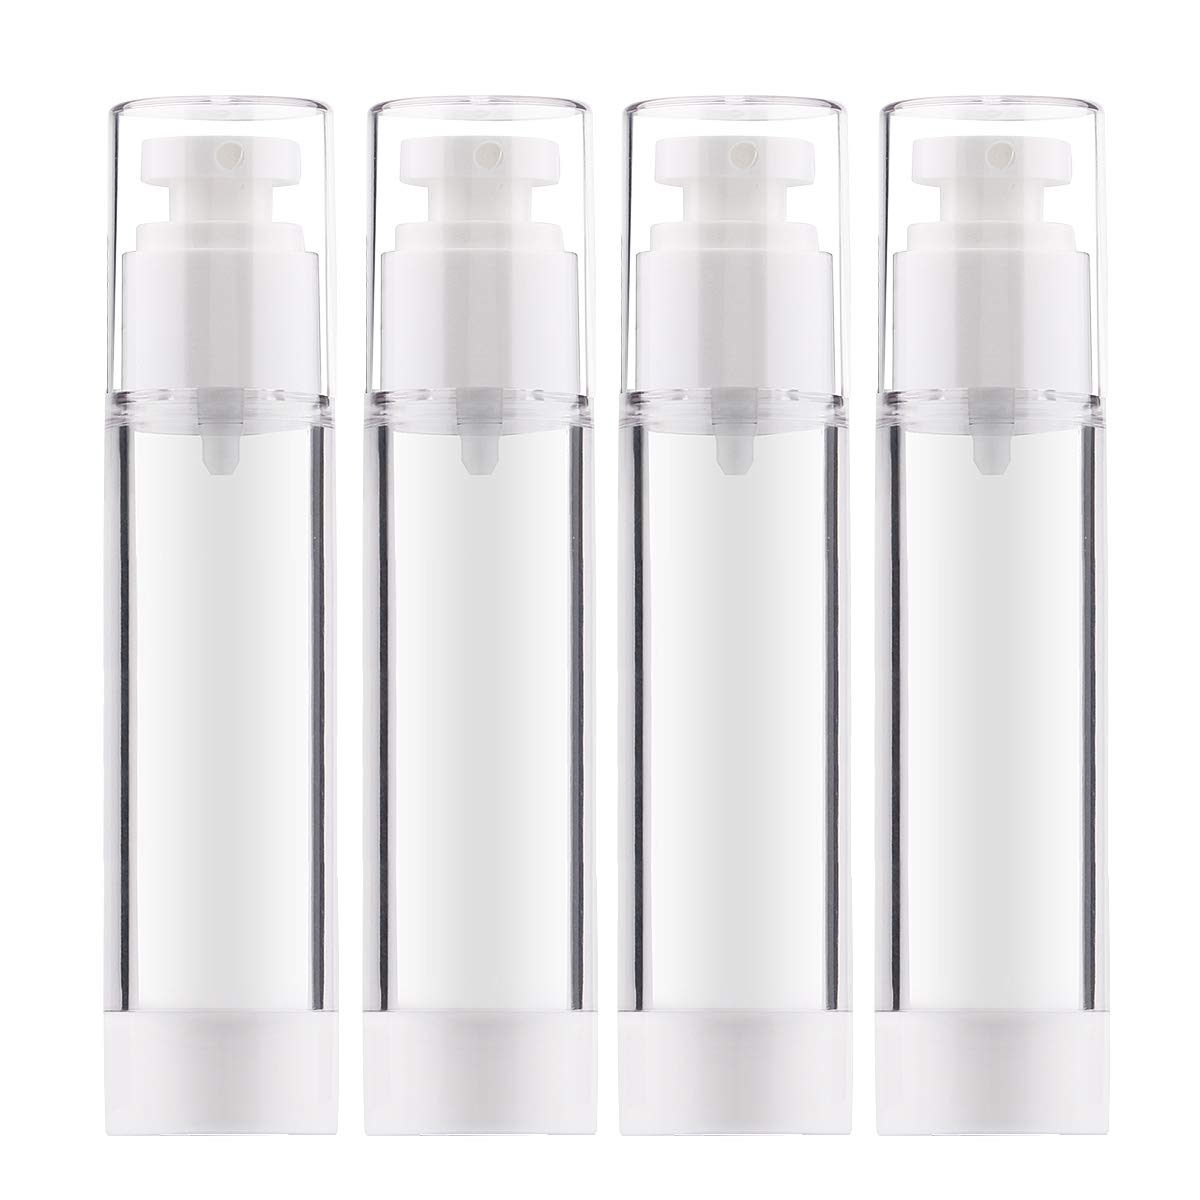 Wholesale Airless Pump Bottles, Yebeauty Empty Airless Bottle Pump Bottle airless travel bottle - 3.4 Ounce N7At